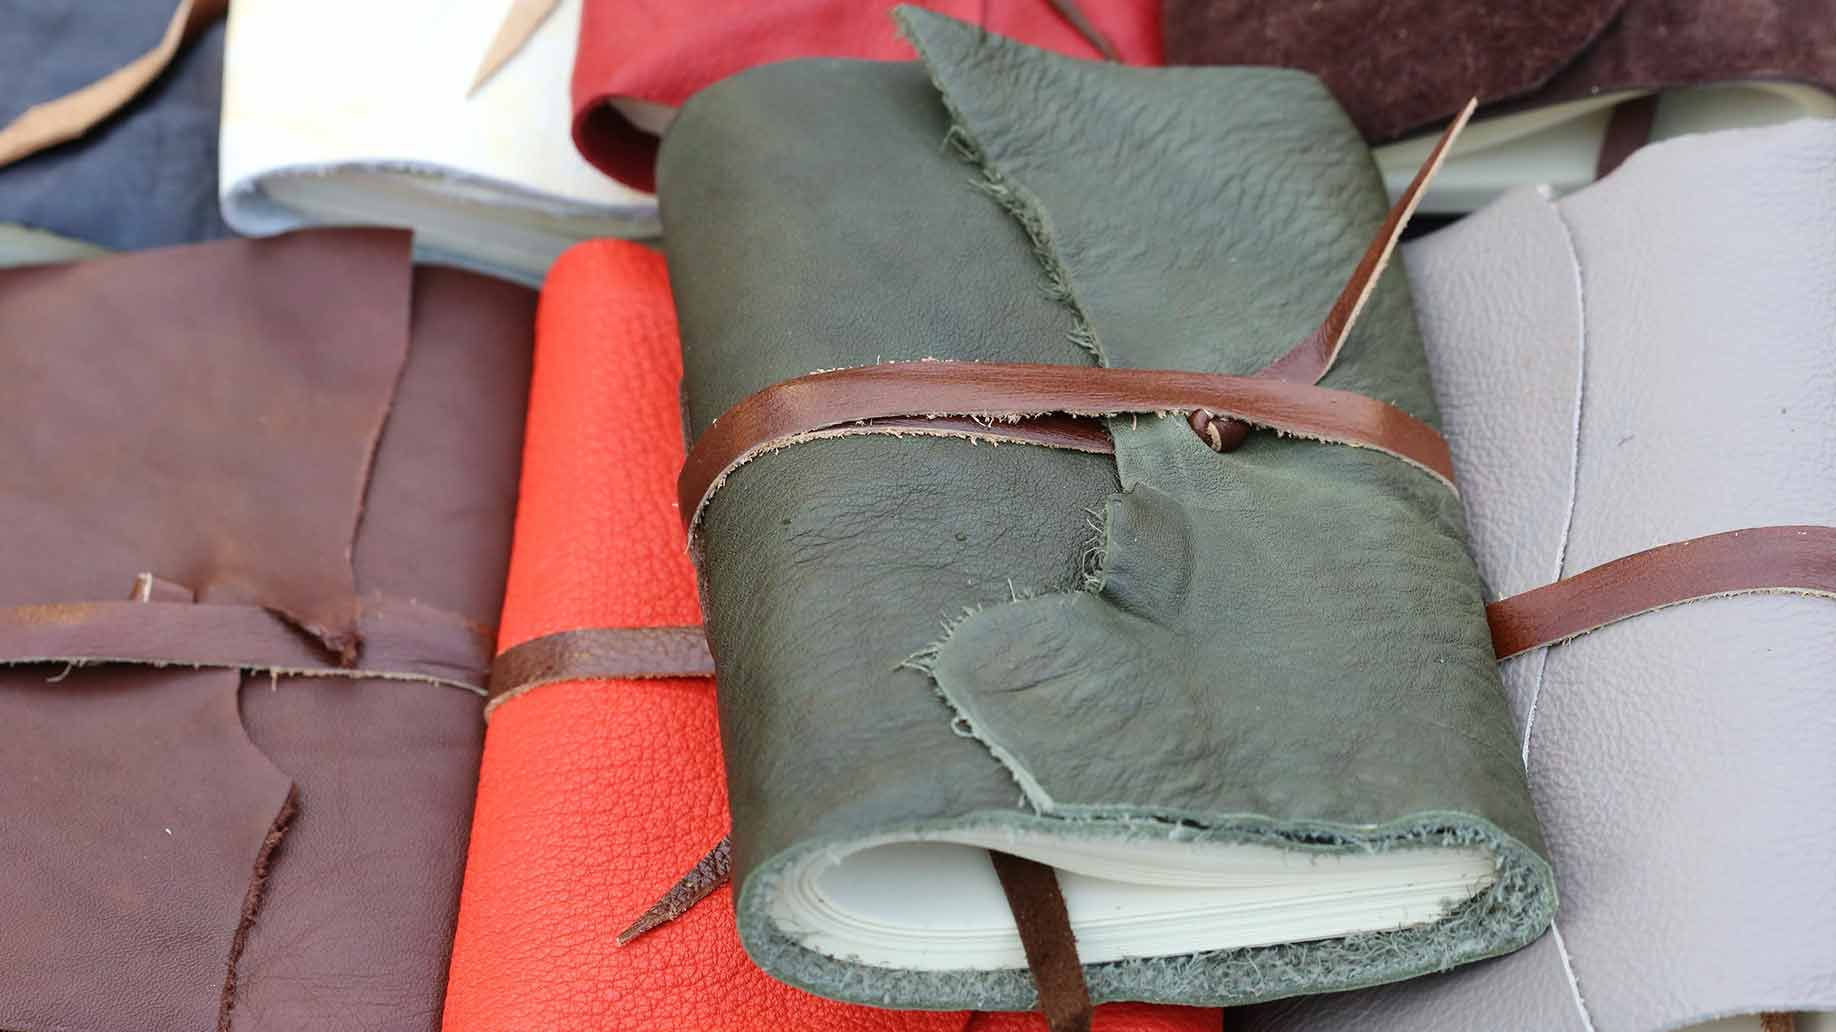 journaling with leather journals